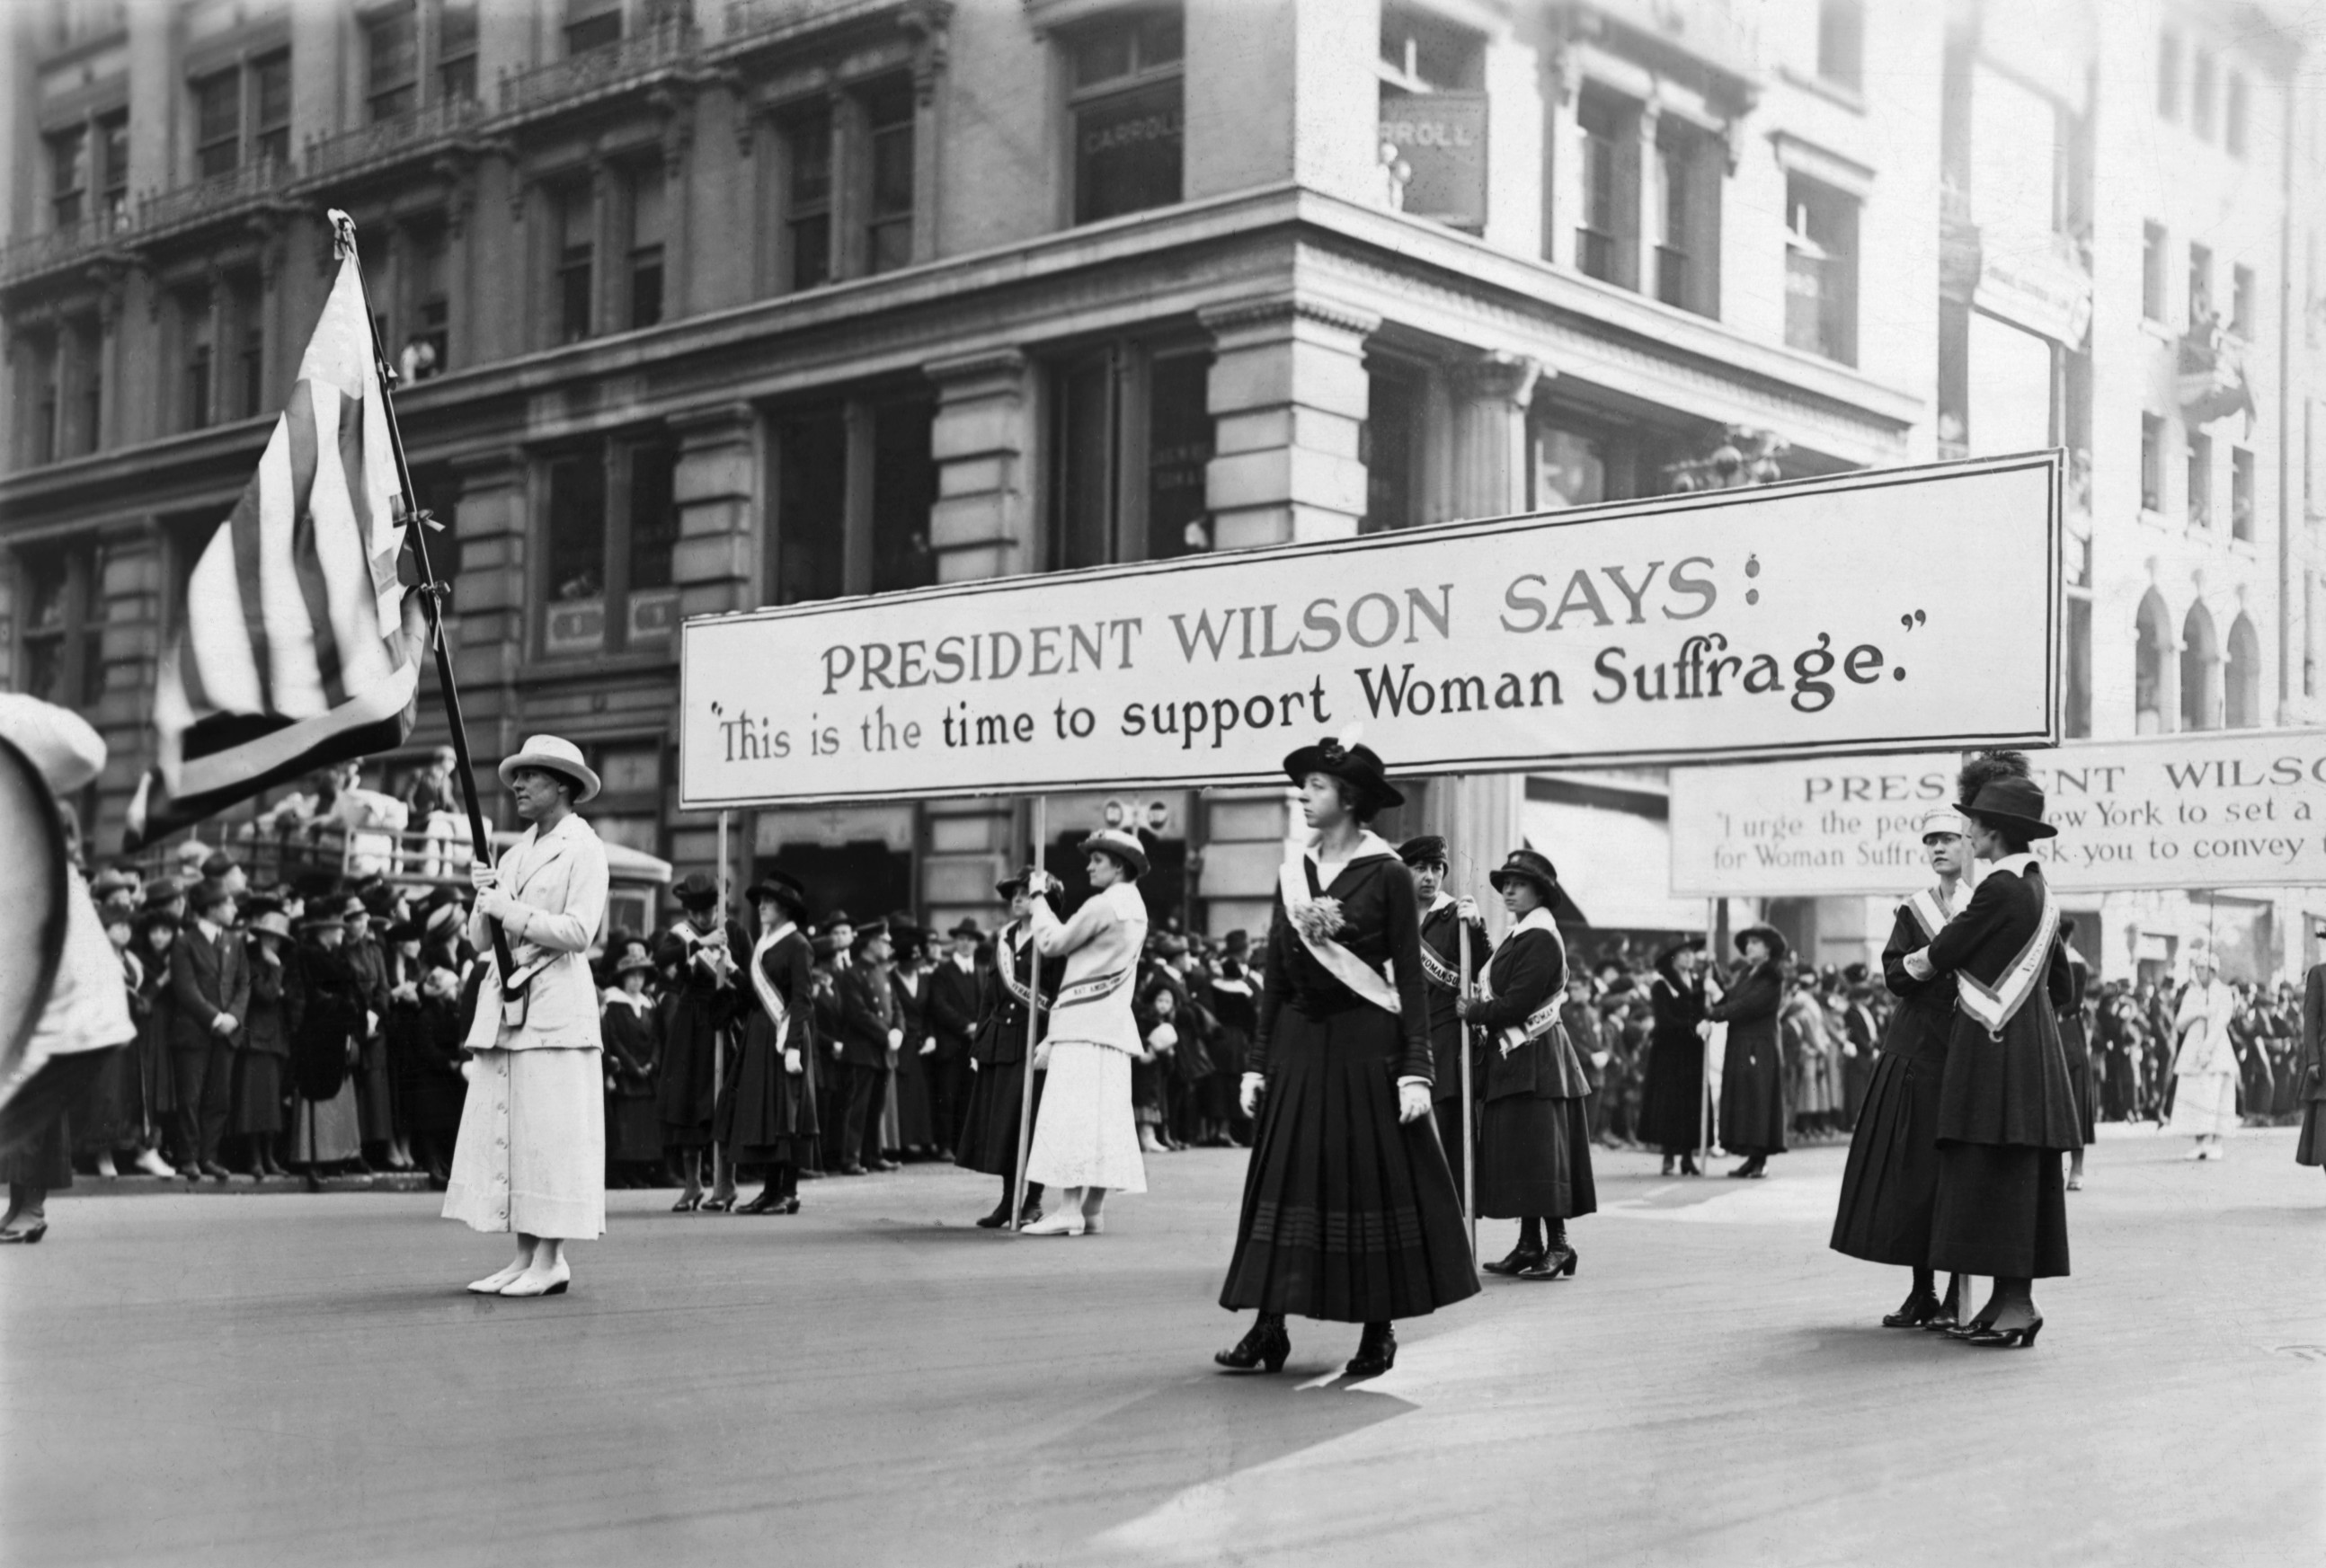 women suffrage parade supporting wilson woodrow wilson pictures woodrow wilson. Black Bedroom Furniture Sets. Home Design Ideas